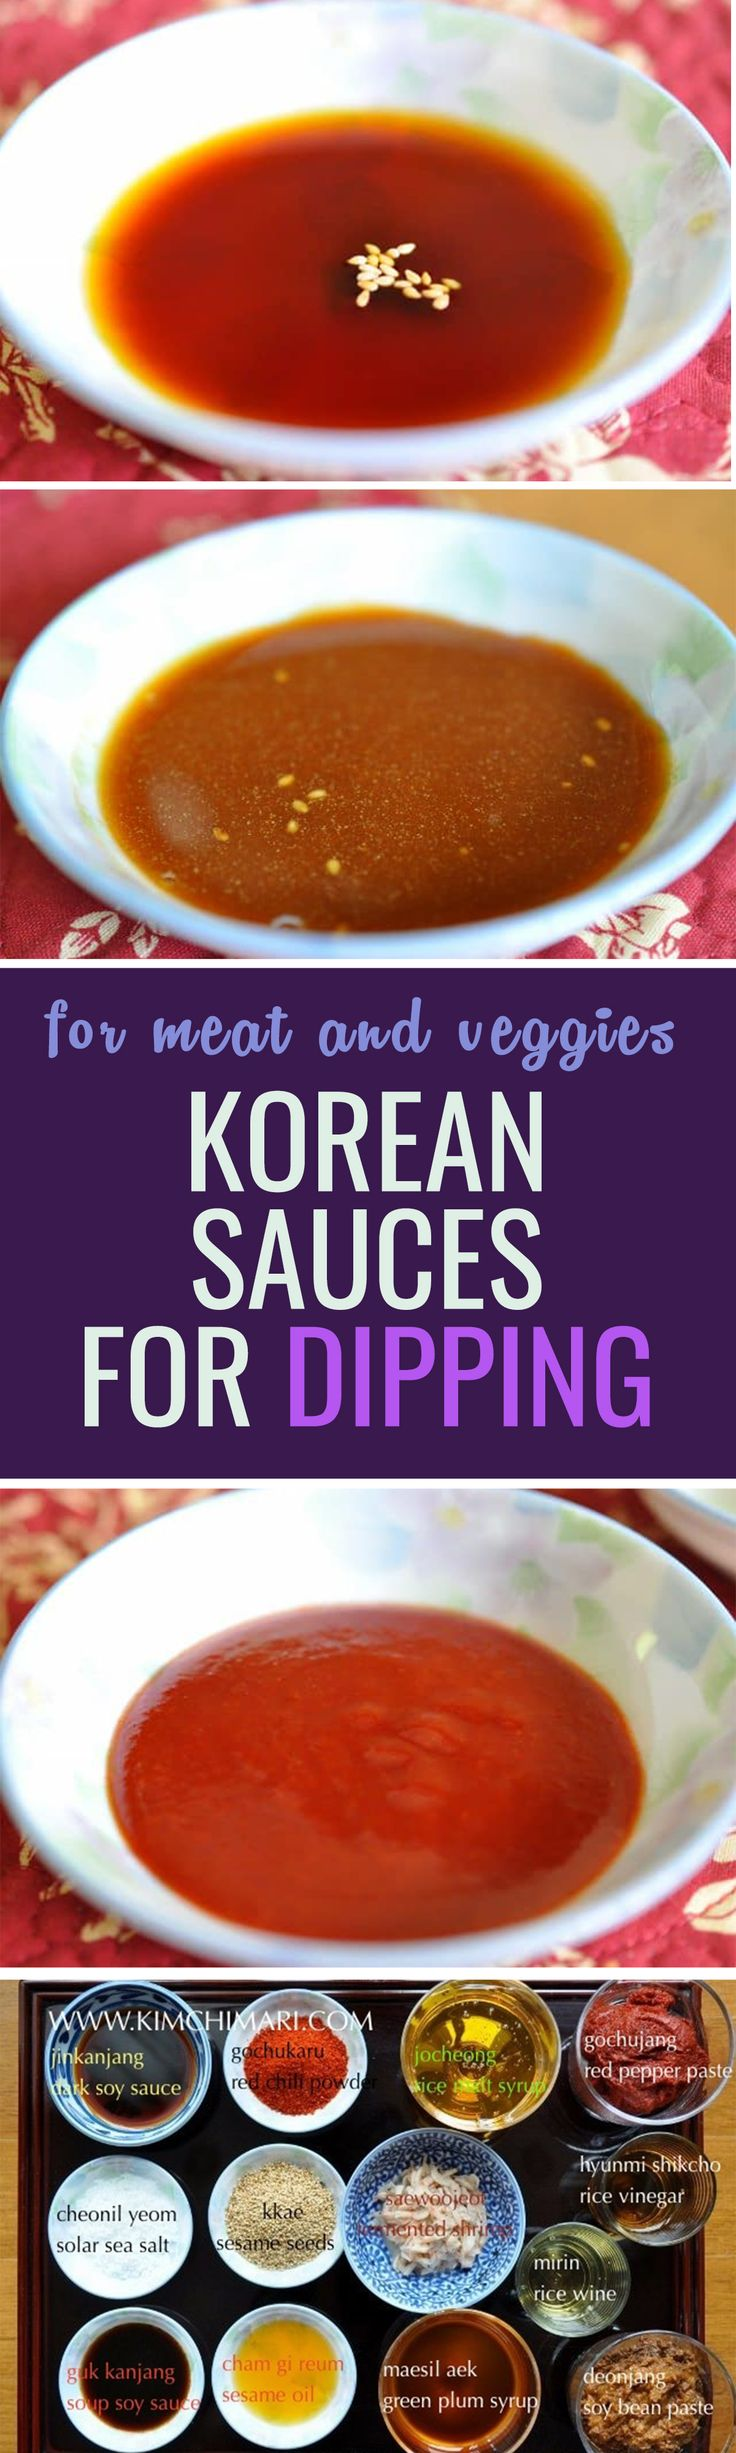 Korean sauce info post part 1, for dipping vegetables, meat, dumplings and much more!